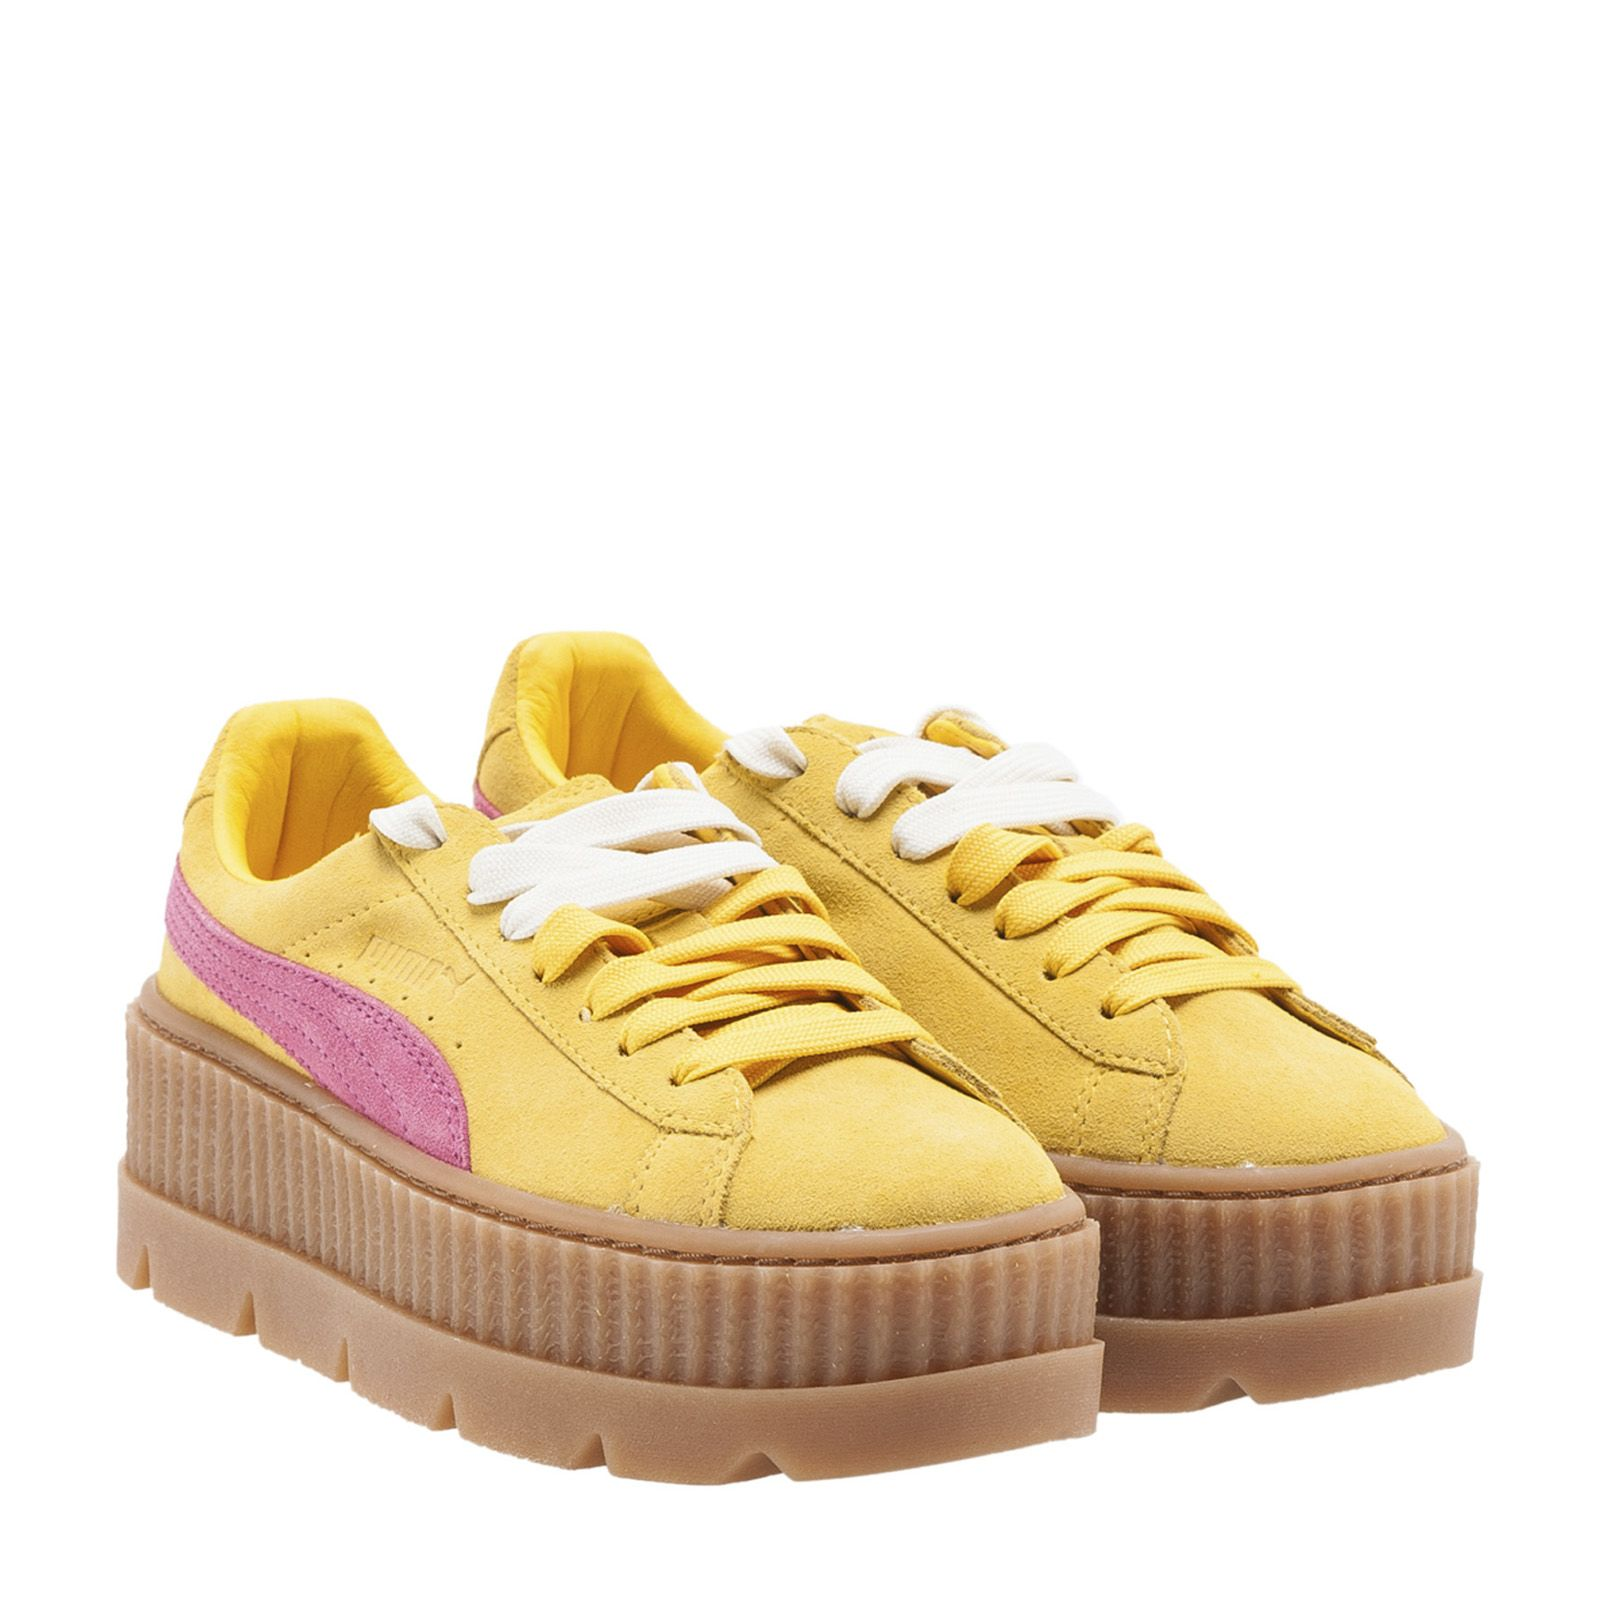 Fenty X Puma Suede Cleated Creeper Sneakers